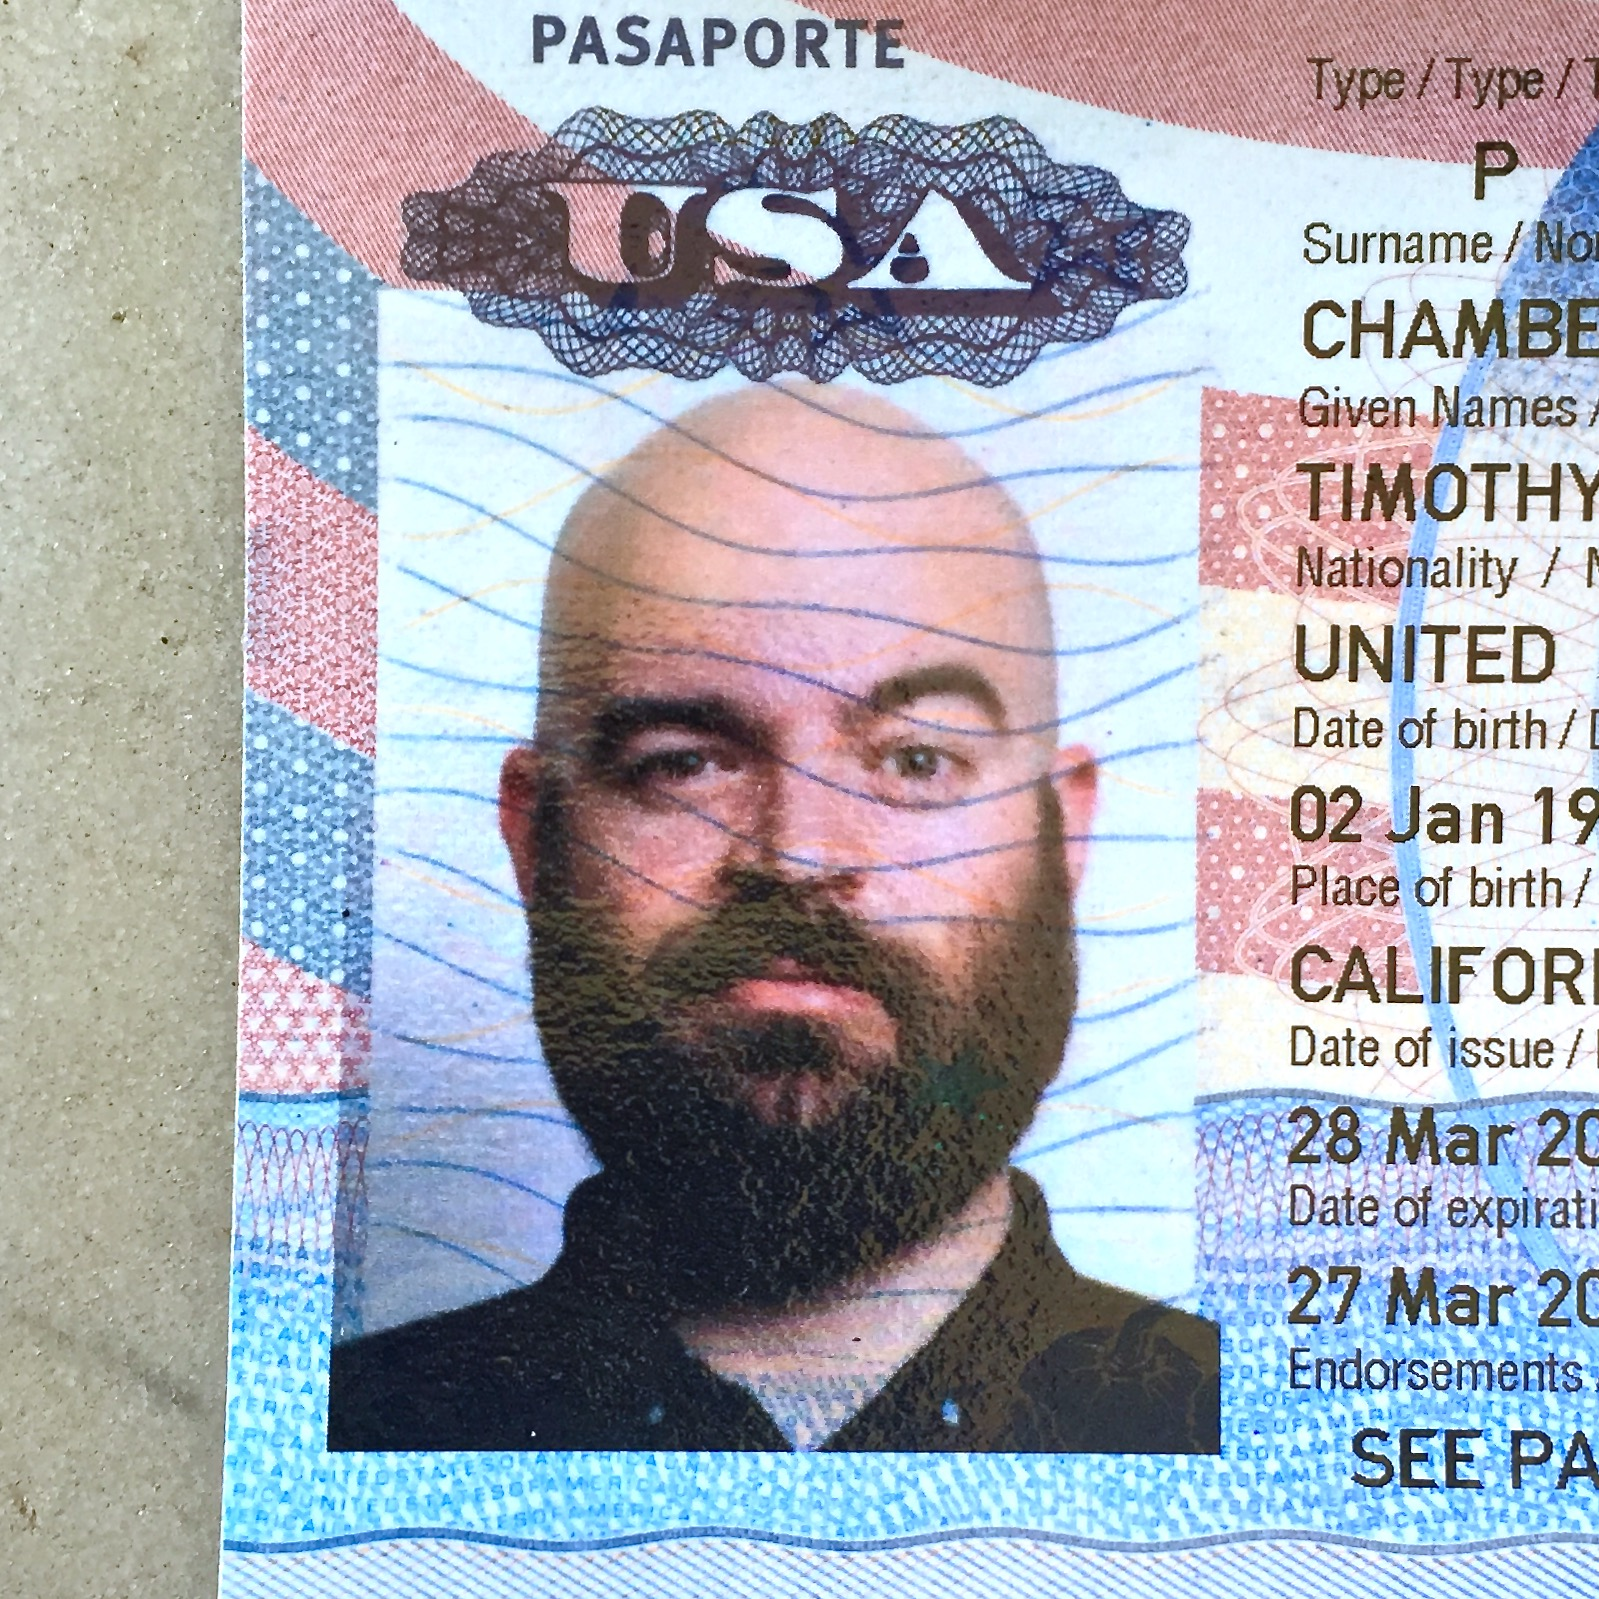 Tim Chambers  lives in Washington, D.C. and takes pictures of tarts made by his wife Christina Marie who is a  pastry chef .  Before that, he and his wife travelled around the world, visiting fifteen countries in three months, and before that, they quit their jobs and spent a summer in Haiti photographing people and projects as fellows for  a non-profit organization .  Before that, Tim rode the bus every day from his apartment in San Francisco to his job in Cupertino where he helped make photography software.  Before that, he lived in Sacramento, where he graduated from California State University with a degree in Photography.  Before that, he dropped out of school to work as a graphic designer in a print shop, and before that, he studied graphic design and computer science.  Before that, he worked as a web designer during the first dot com bubble, and before that, he grew up in Northern California.  He was born in Southern California, but doesn't remember much before that.